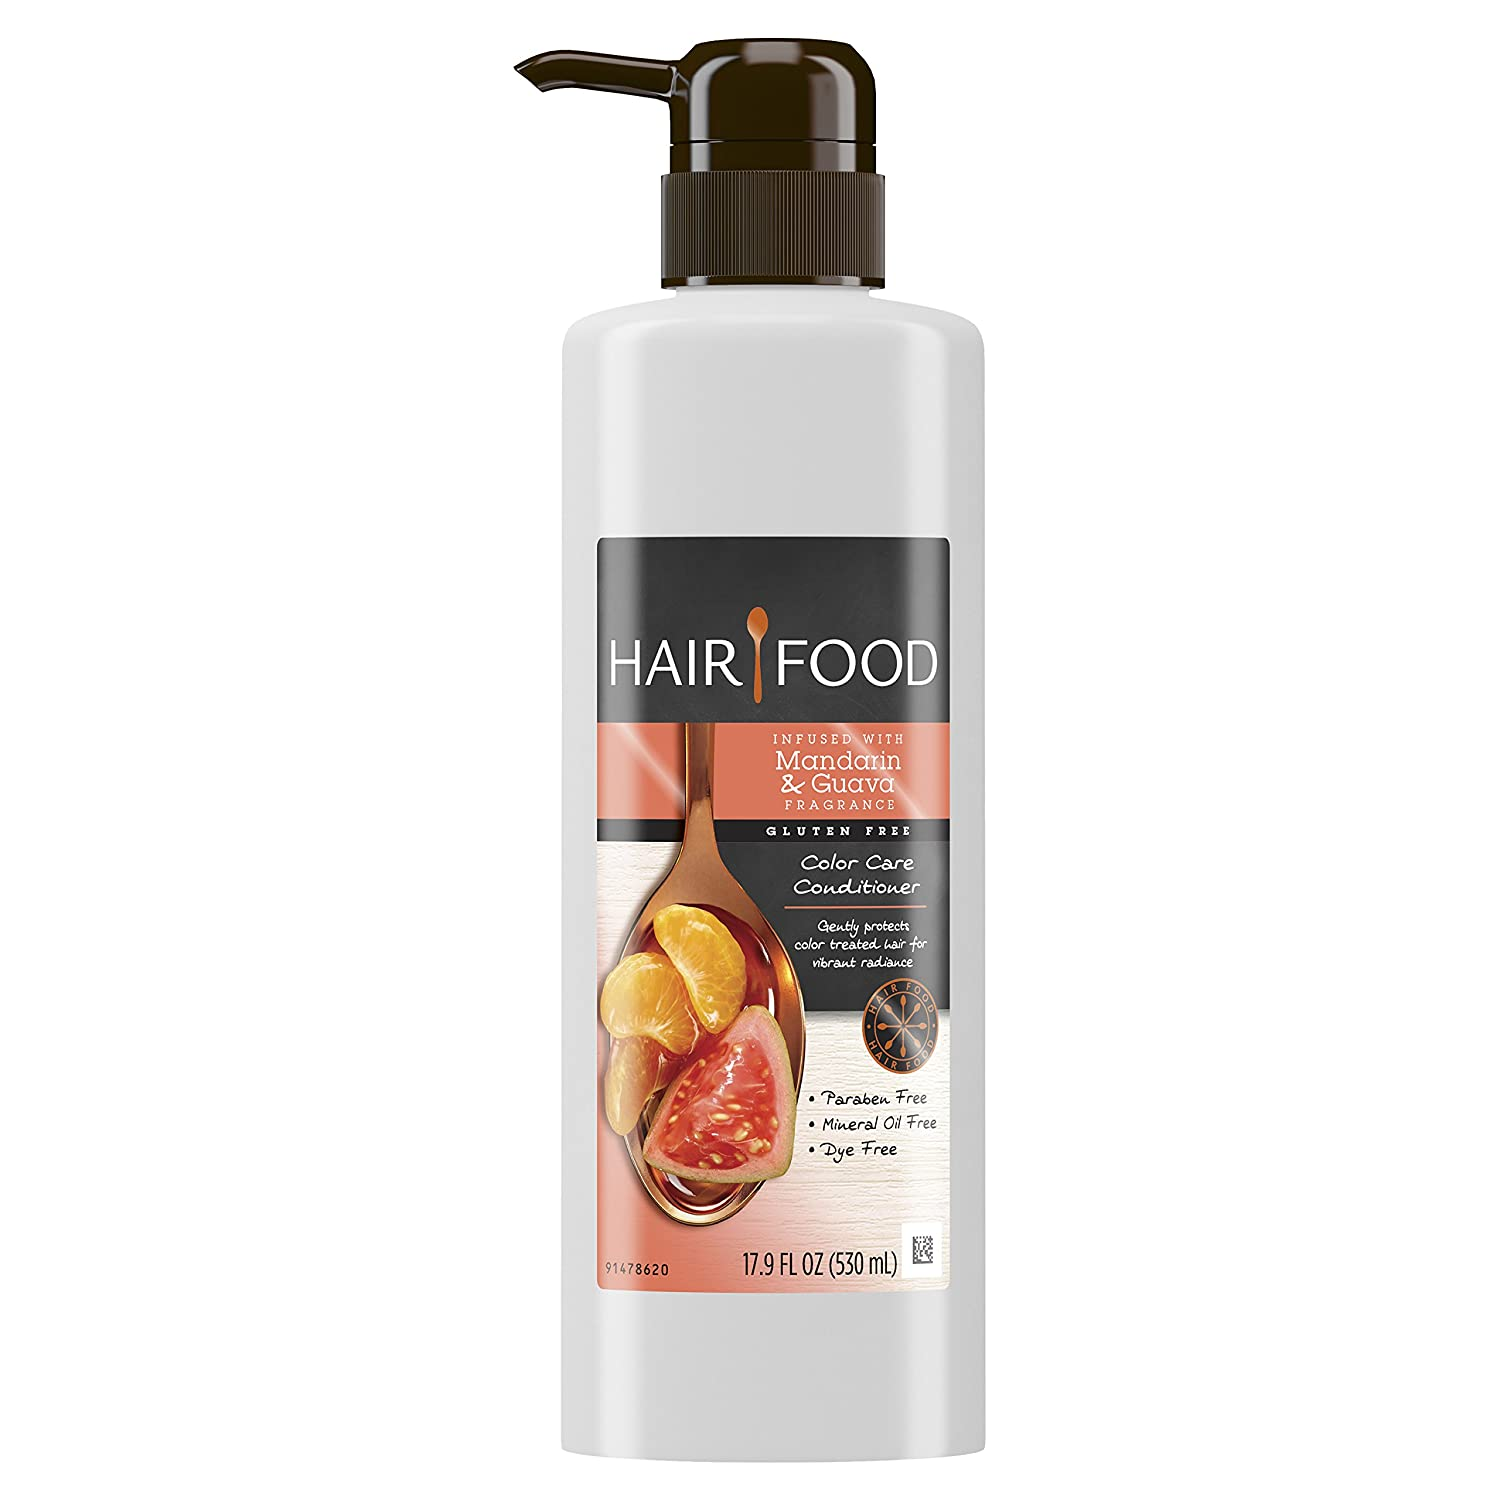 Hair Food Gluten Free Color Care Conditioner Infused with Mandarin & Guava Fragrance, 17.9 fl oz